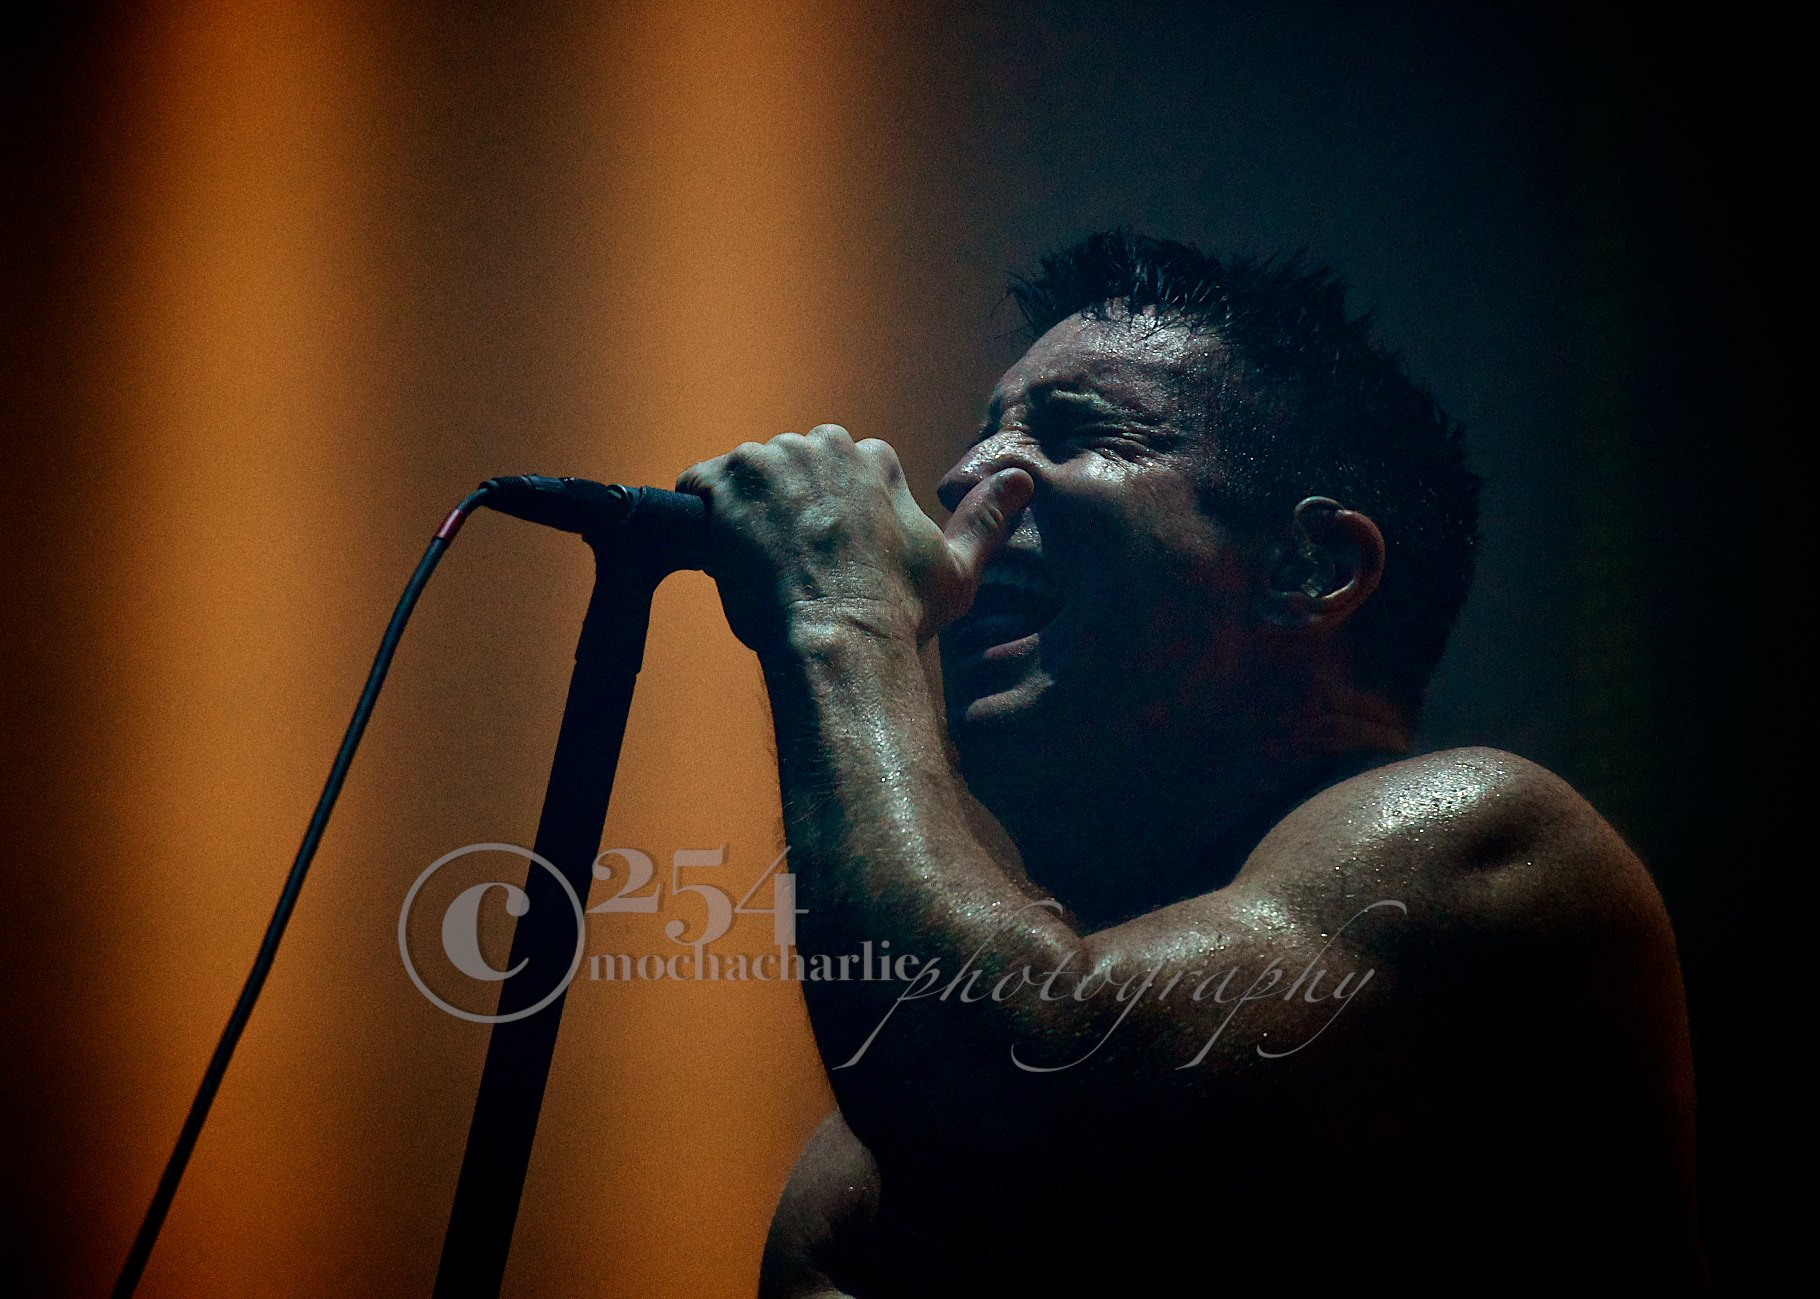 Nine Inch Nails at White River Ampitheatre (Photo by Mocha Charlie)